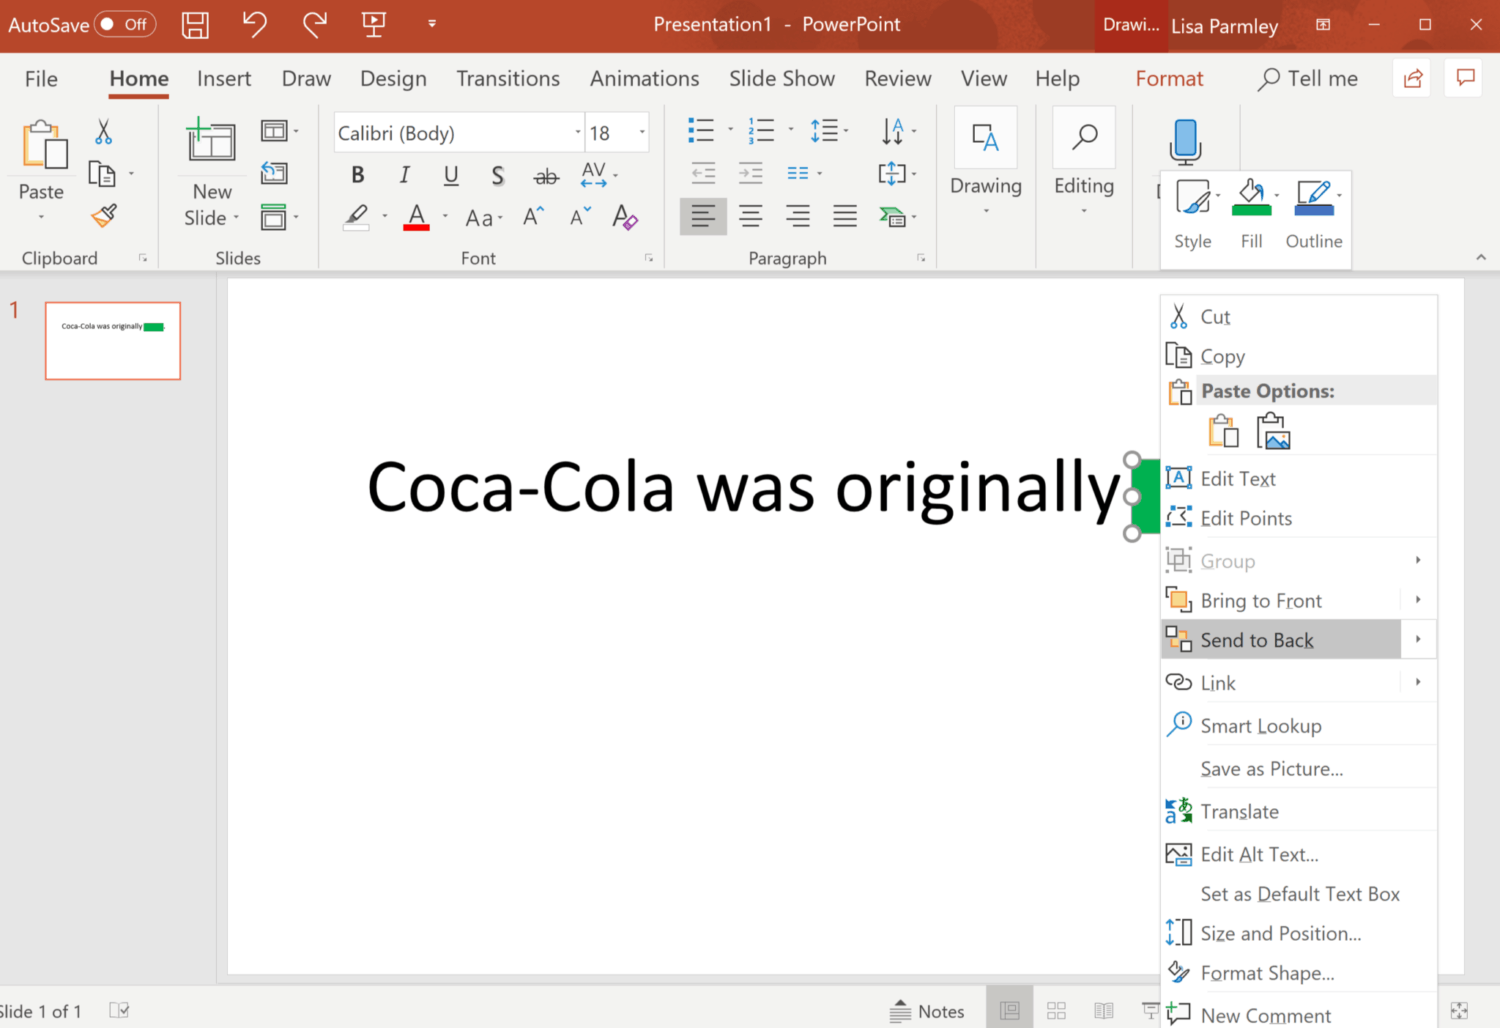 another image of how that looks in PowerPoint: